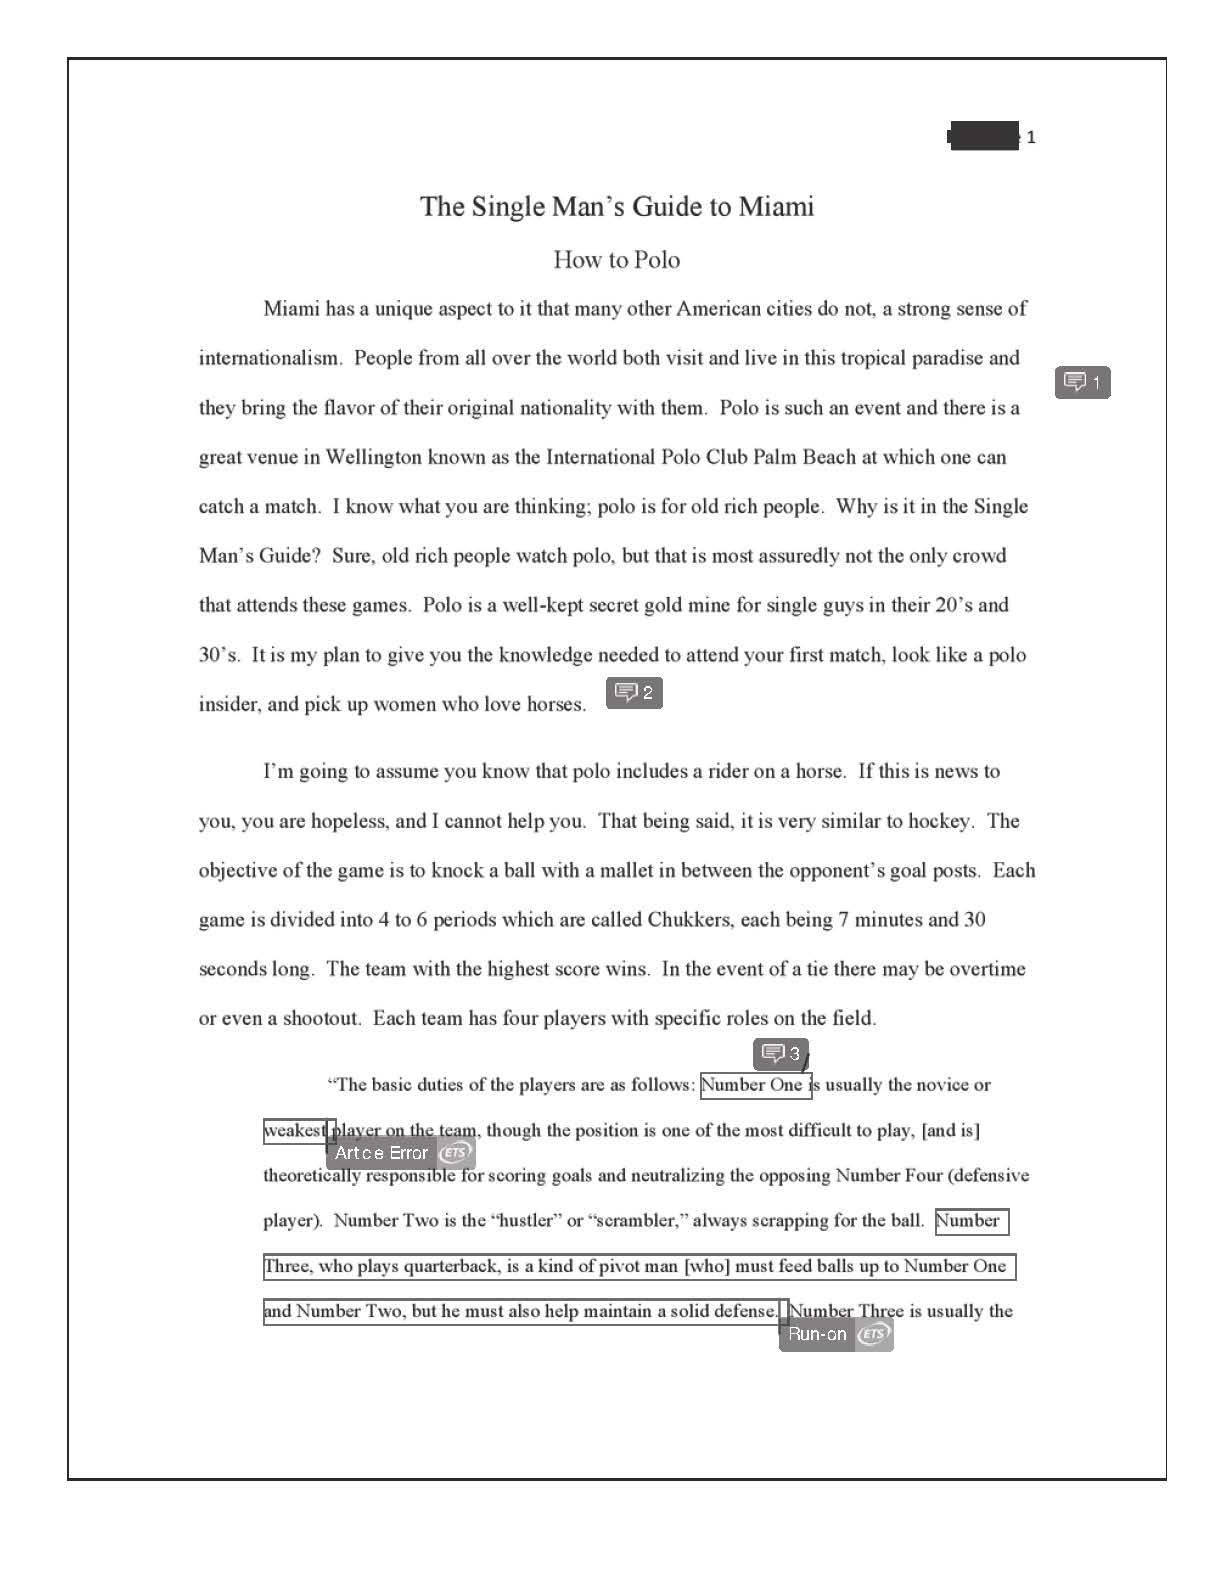 003 Example Of An Essay About Education Examplesative Essays Writing Utopia Instructionative Final How To Polo Redacted P Quiz Prewriting Quizlet Staggering Examples Informative For High School Expository Middle Samples Full